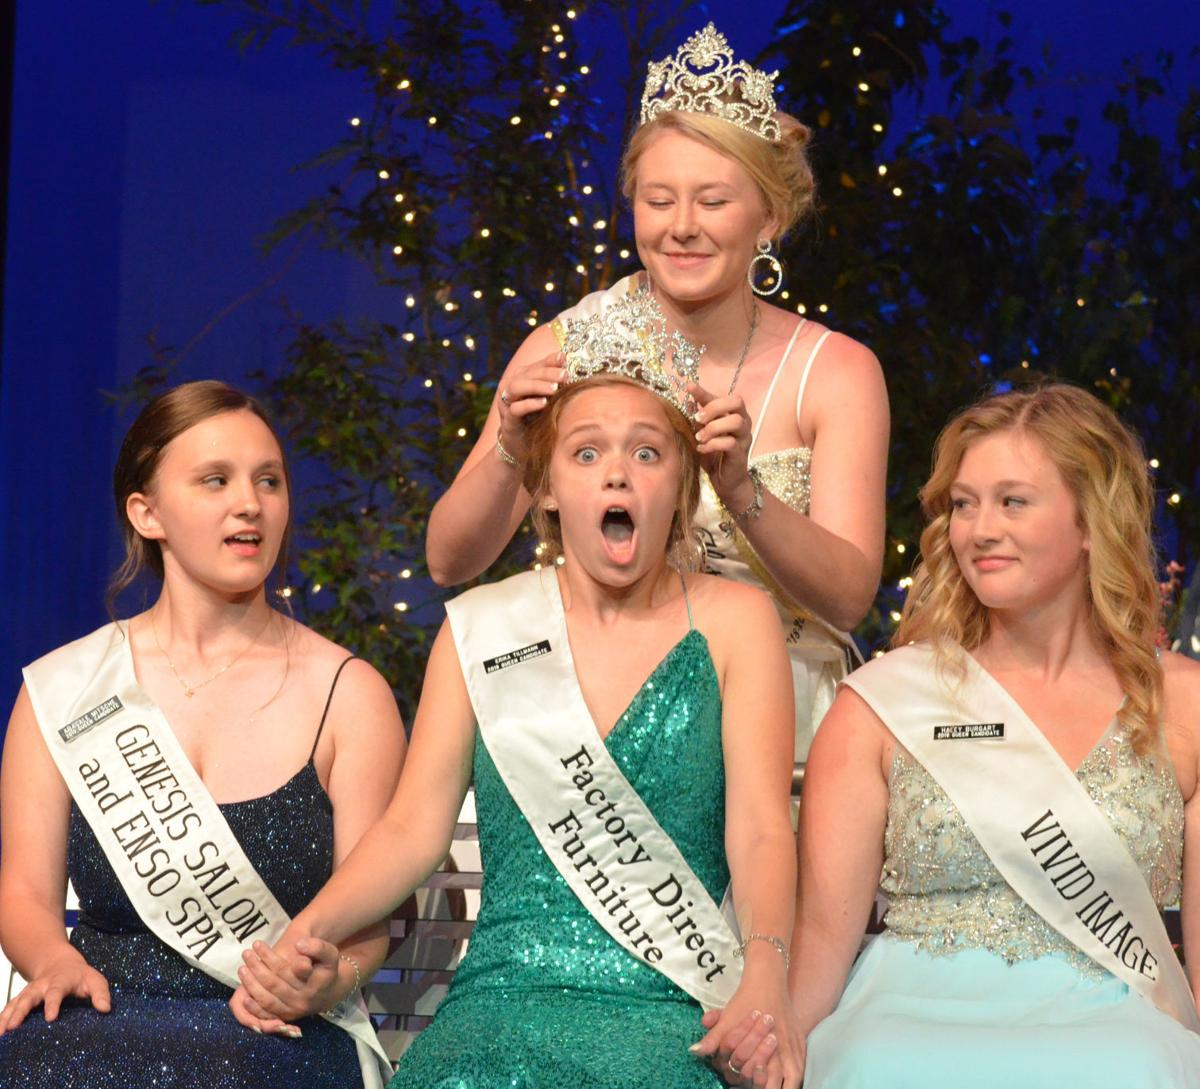 2019 Miss Hutchinson crowned